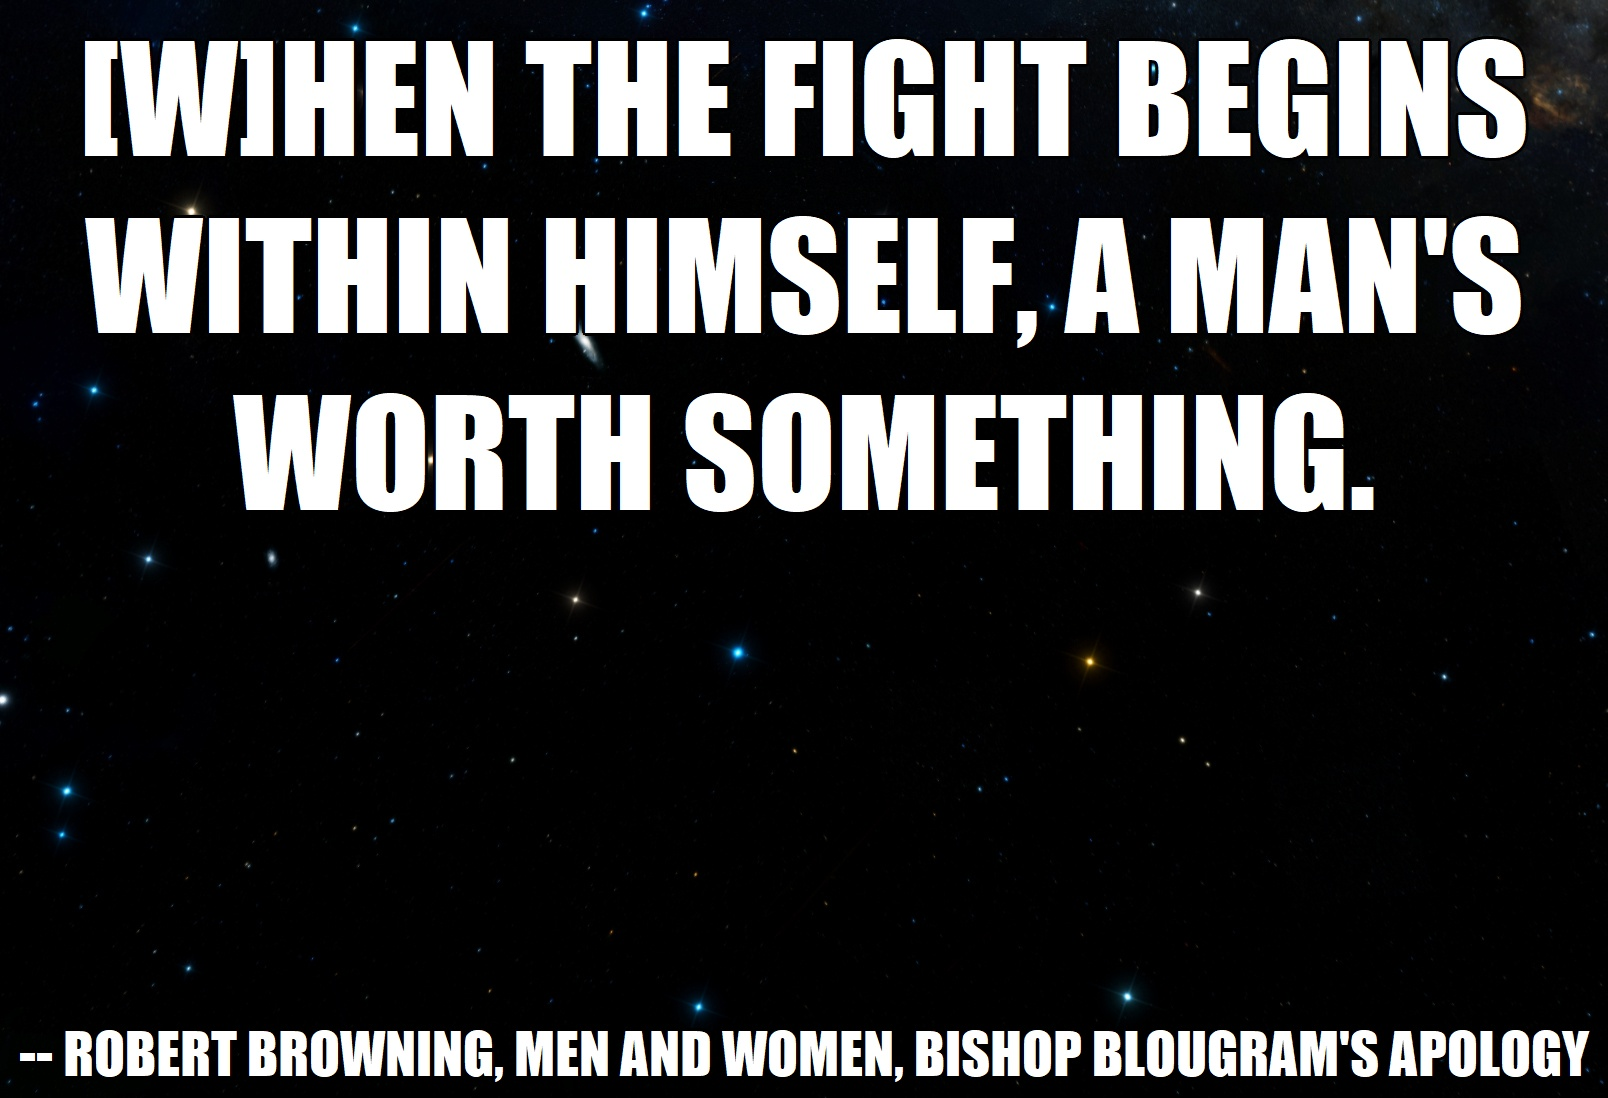 Robert Browning - The Fight Within.jpg